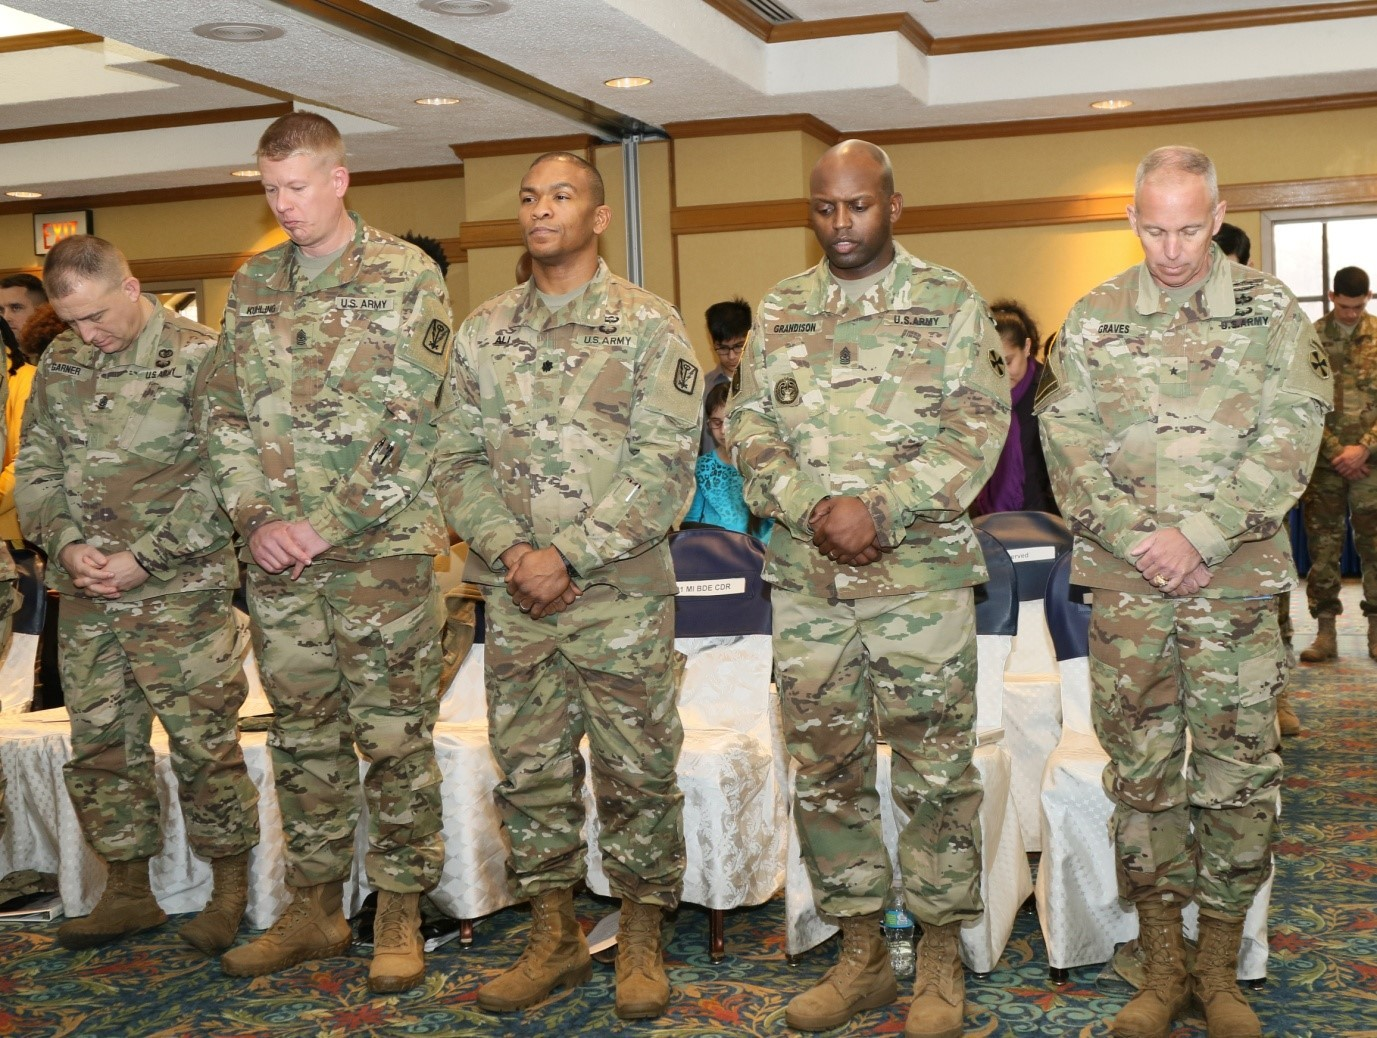 Eighth Army Celebrates Civil Rights Leader S Legacy